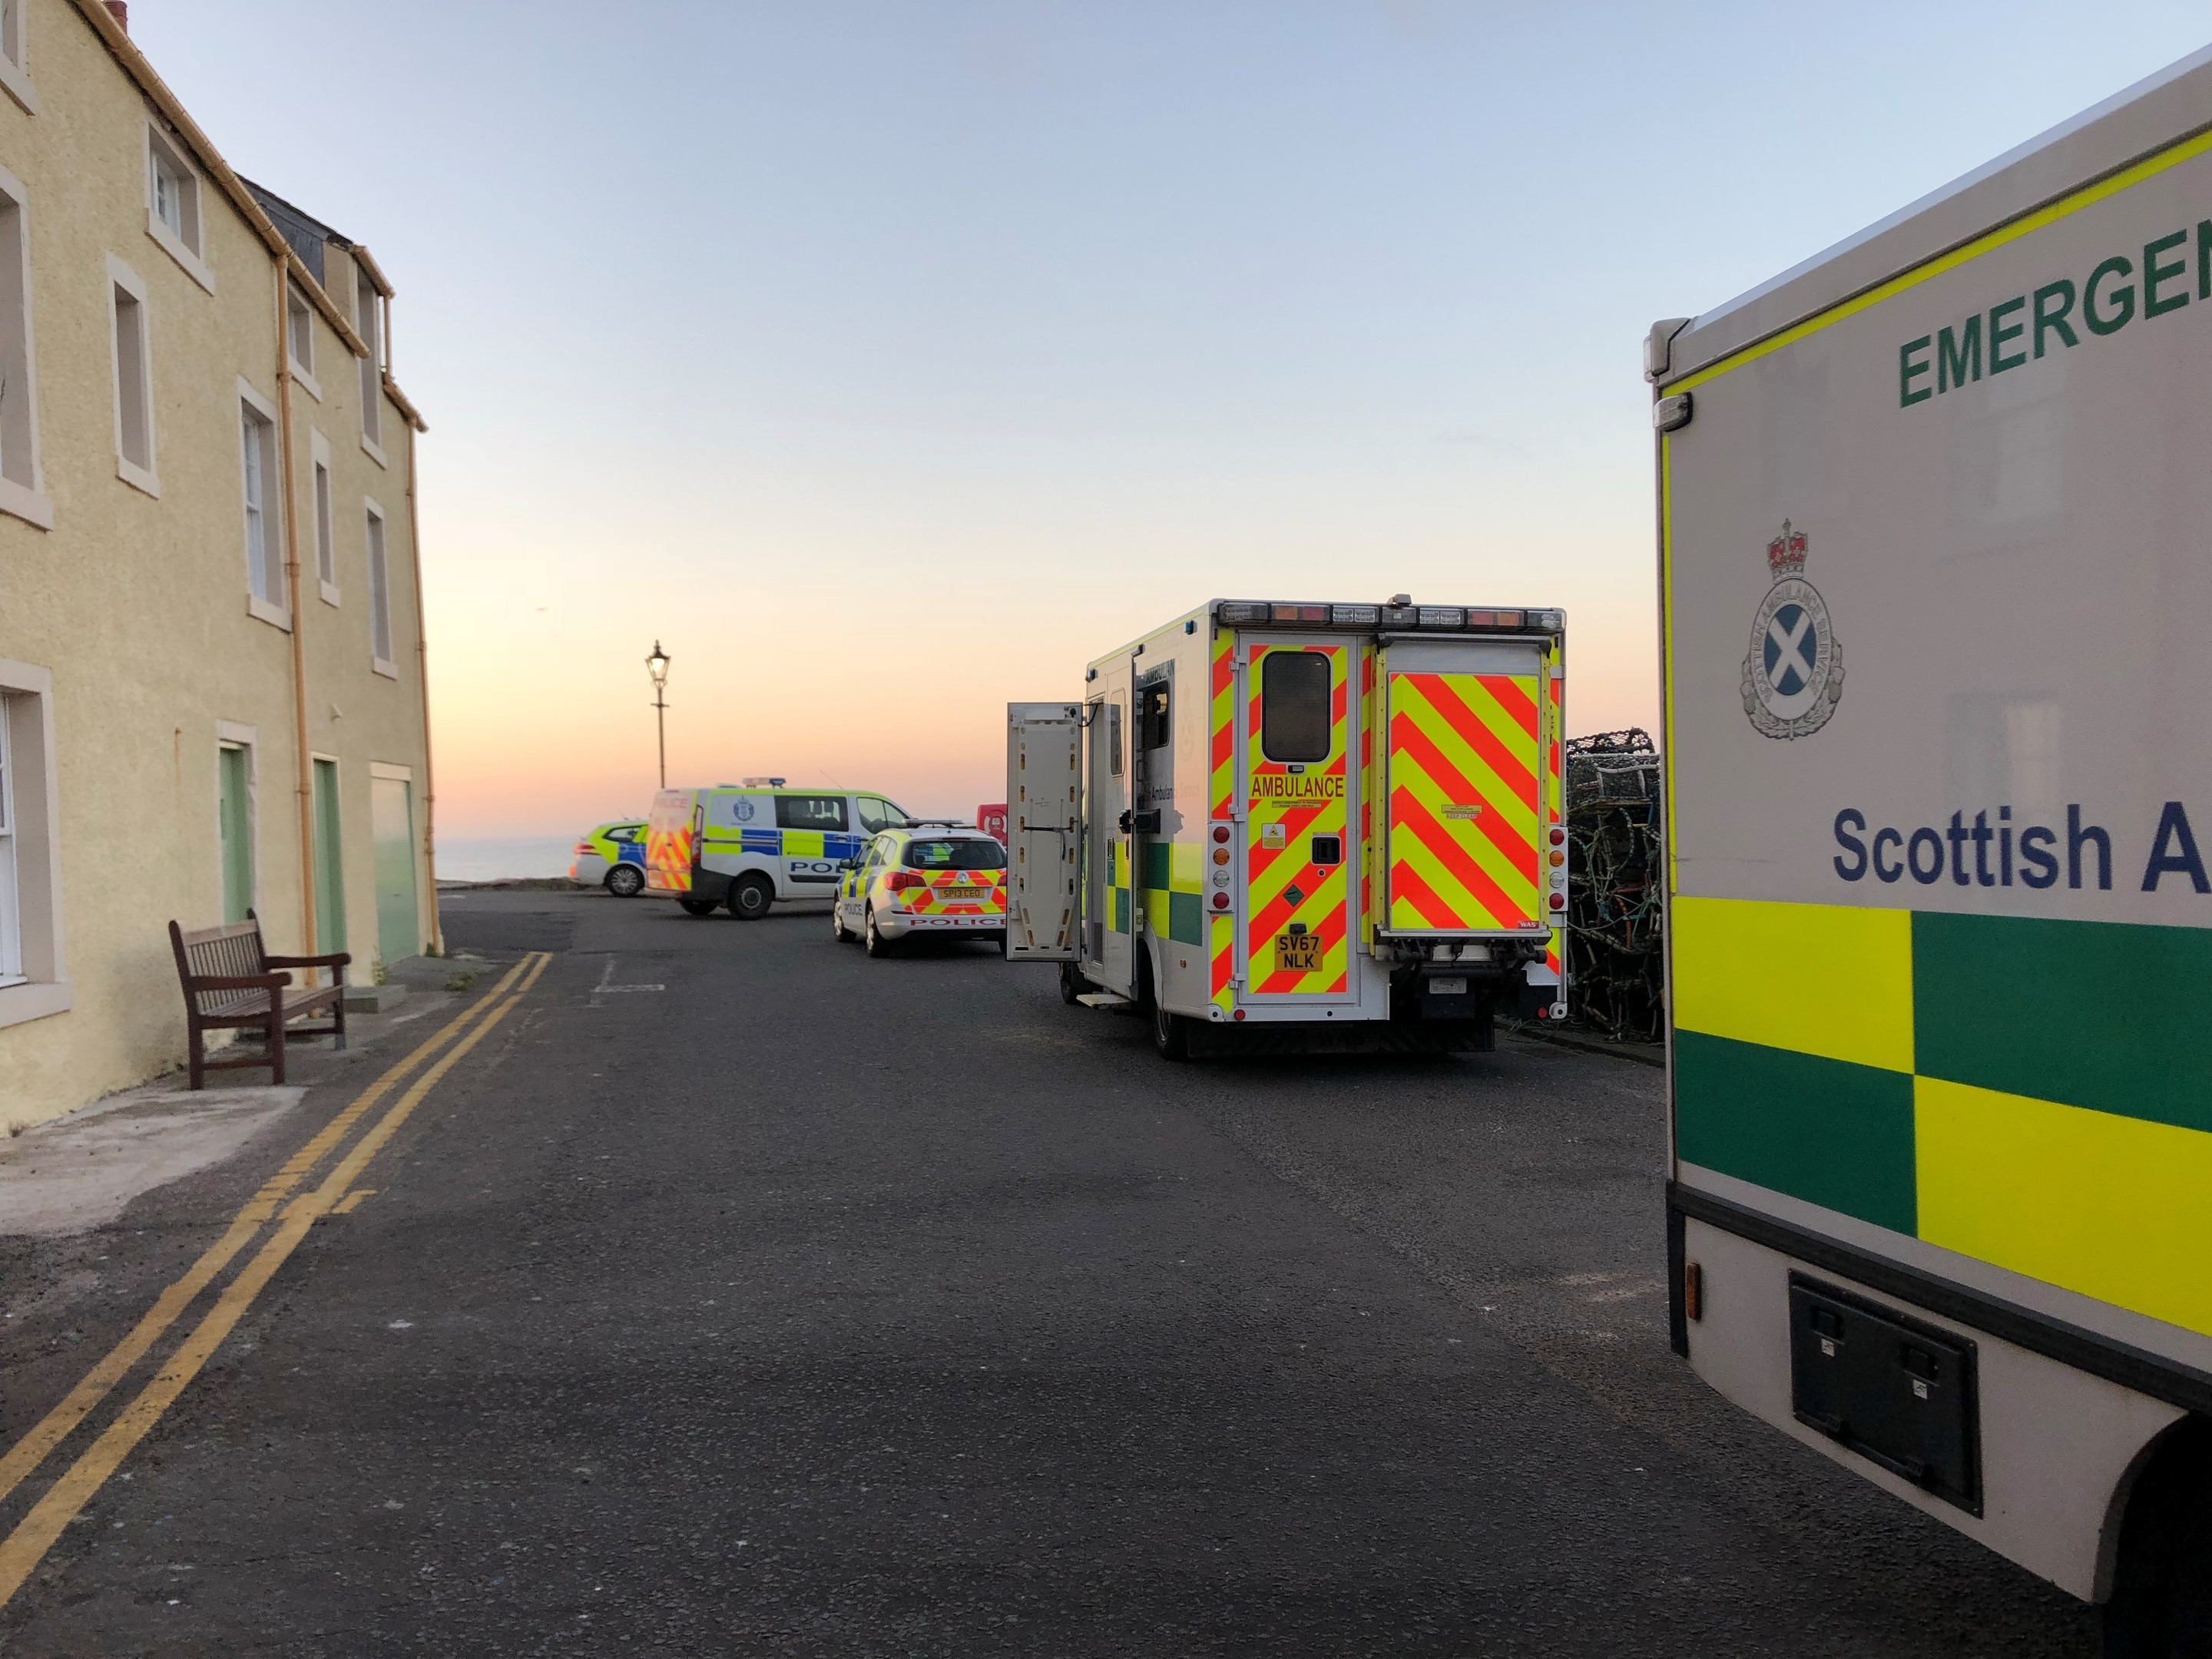 Police and ambulance at St Andrews pier.